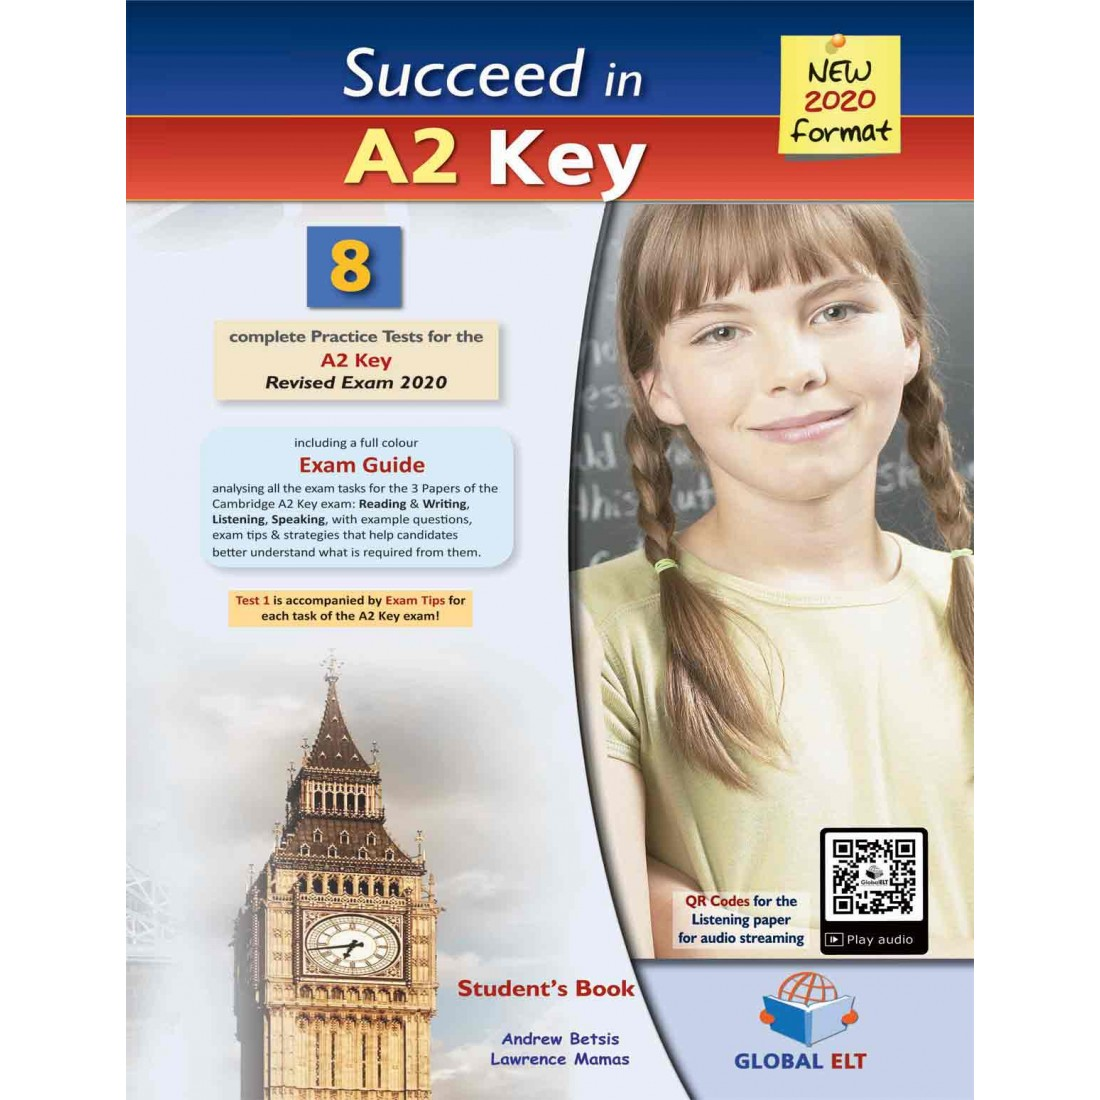 SUCCEED IN A2 KEY 8 PRACTICE TESTS SELF STUDY EDITION NEW 2020 FORMAT